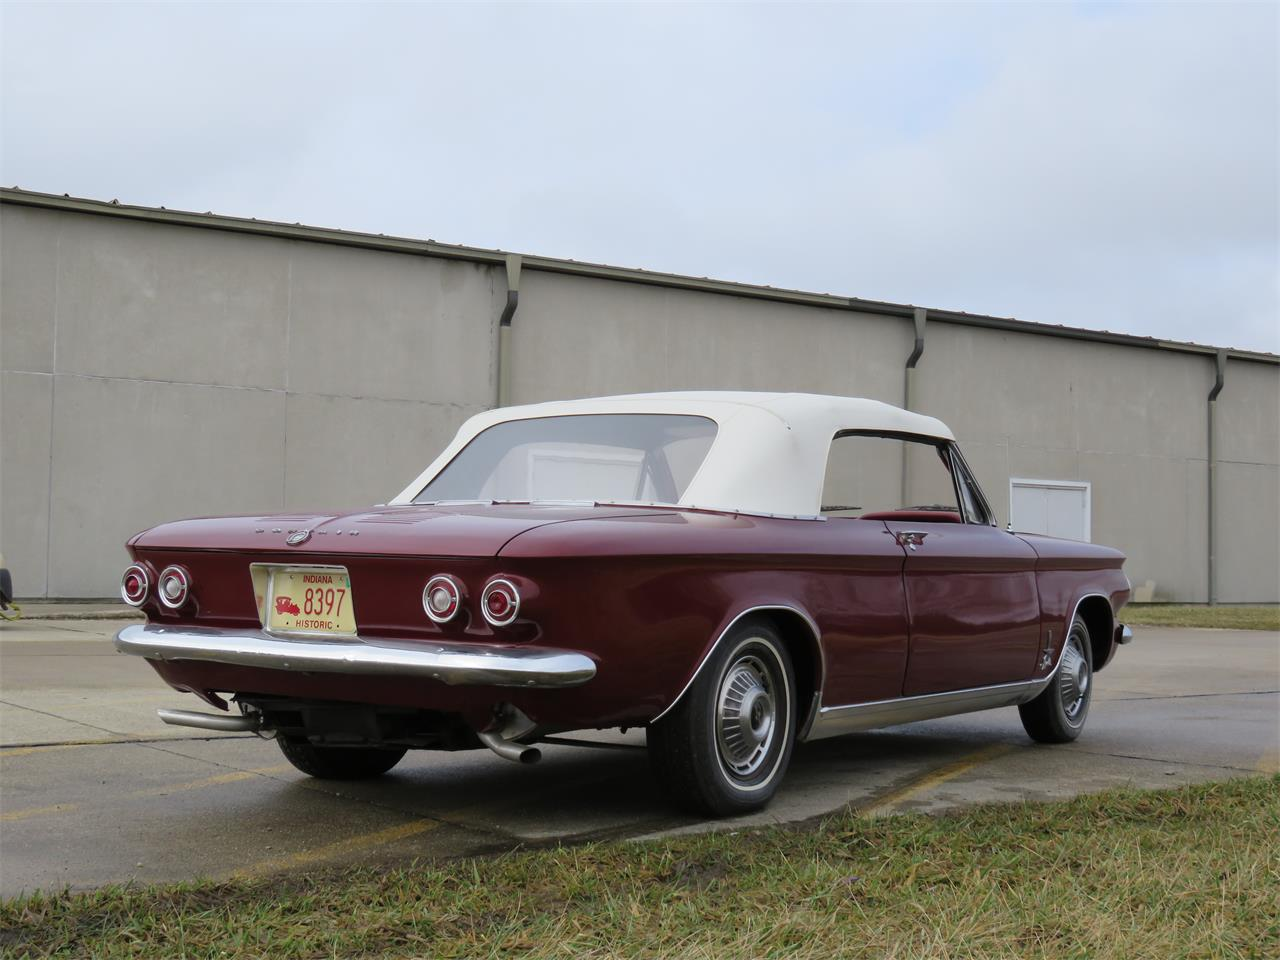 Large Picture of '64 Corvair Auction Vehicle Offered by Earlywine Auctions - MXJY